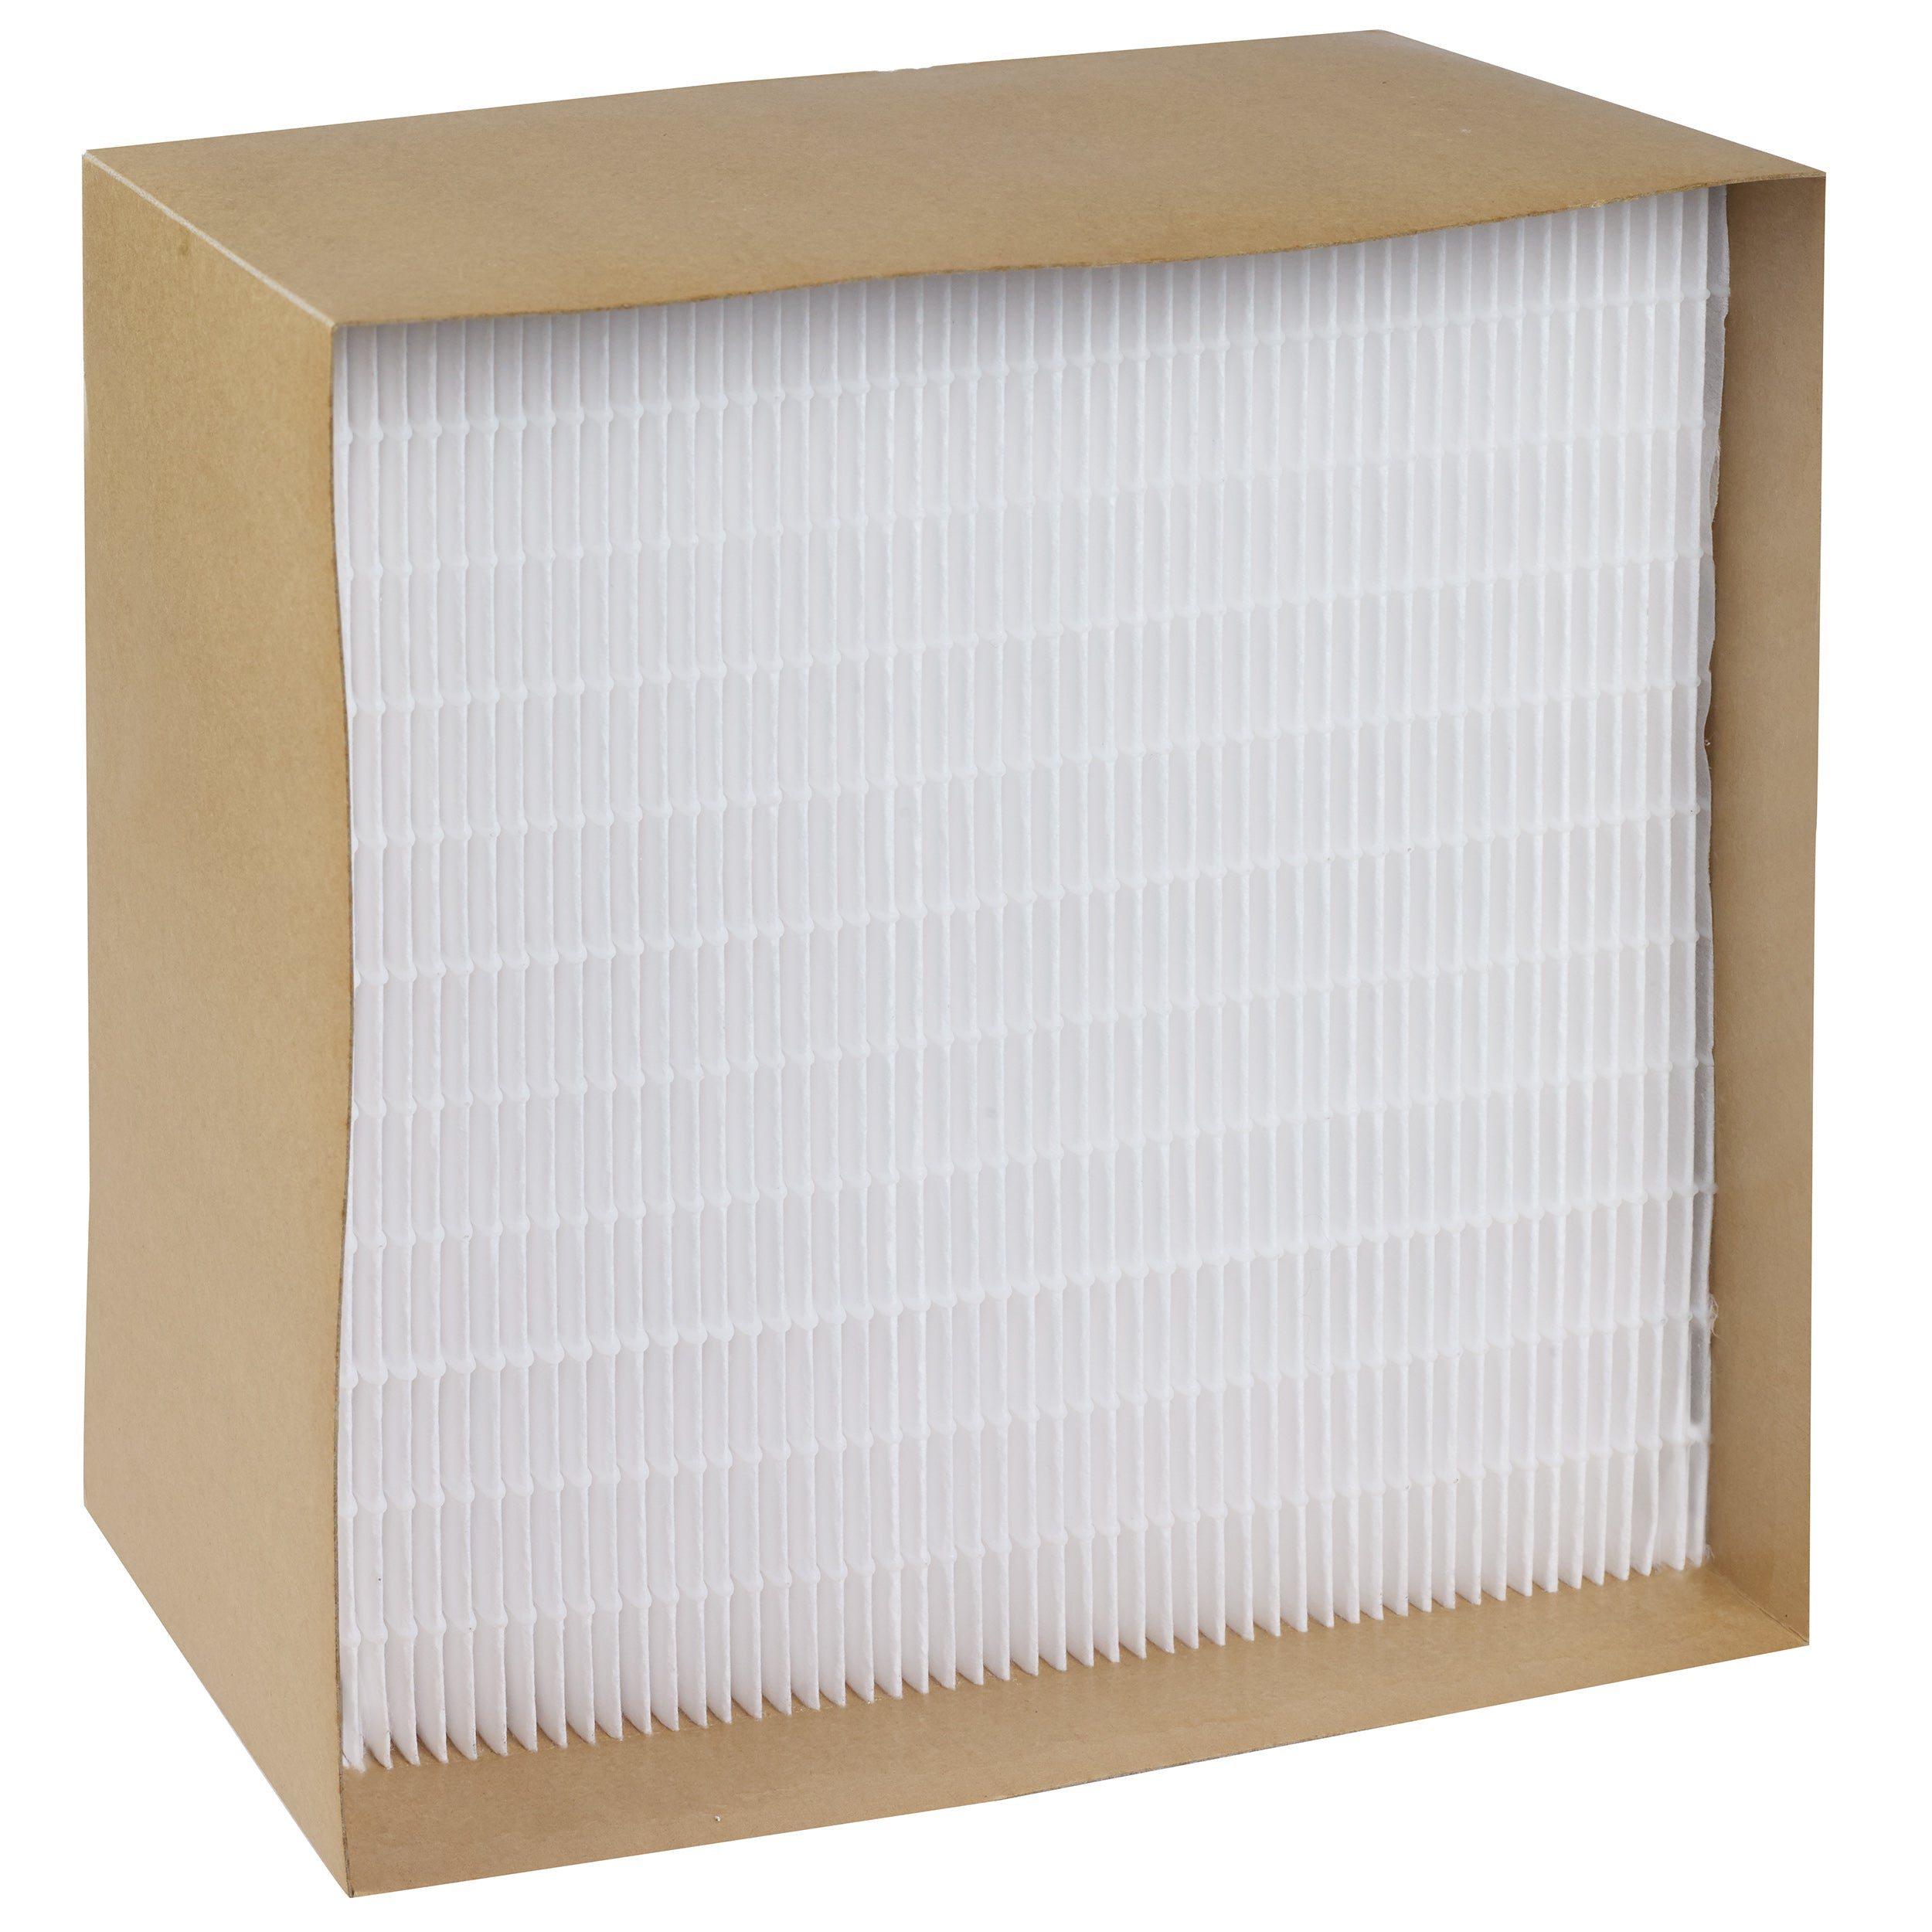 Smartvent compatible filter $55 - supercellnz